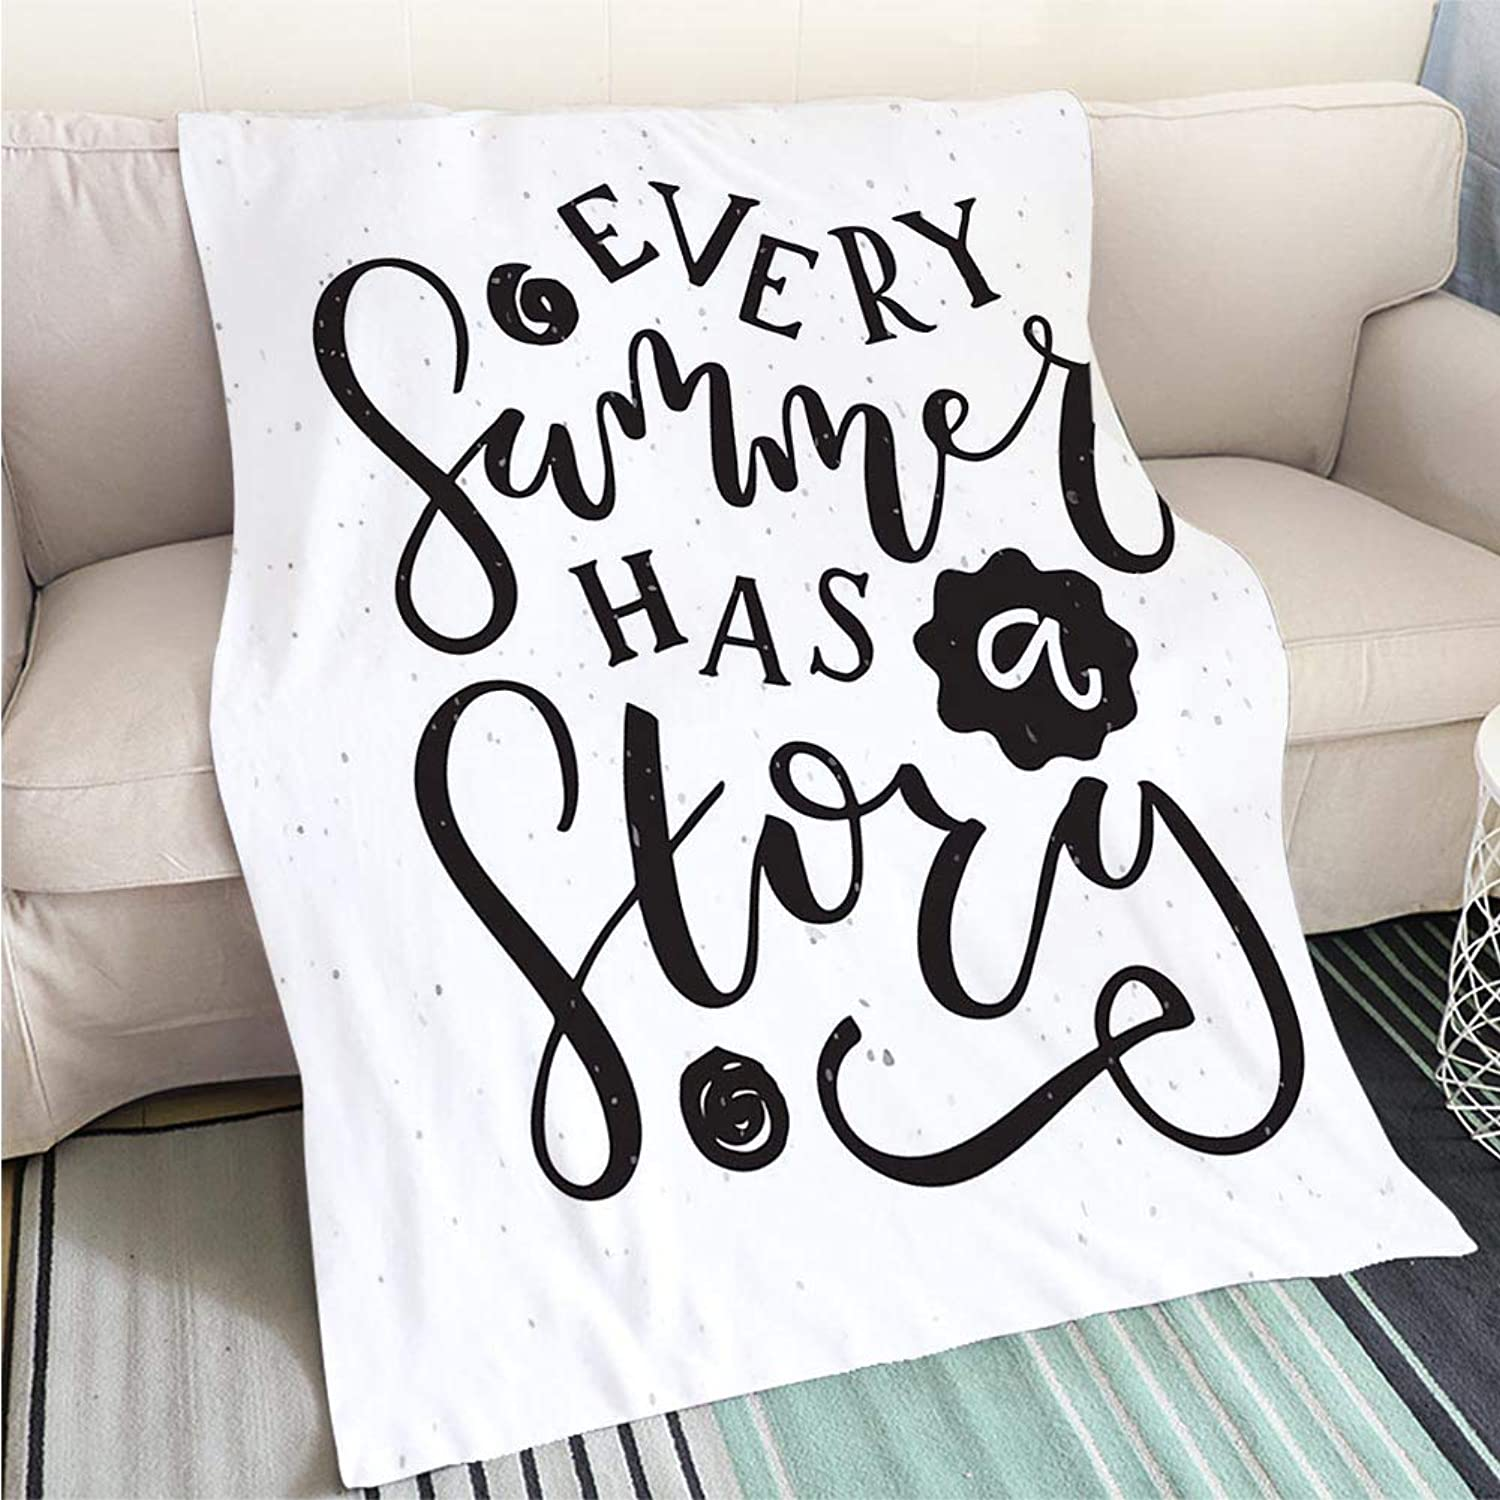 Art Design Photos Cool Quilt Hand Sketched 'Every Summer Has a Story' Text Perfect for Couch Sofa or Bed Cool Quilt